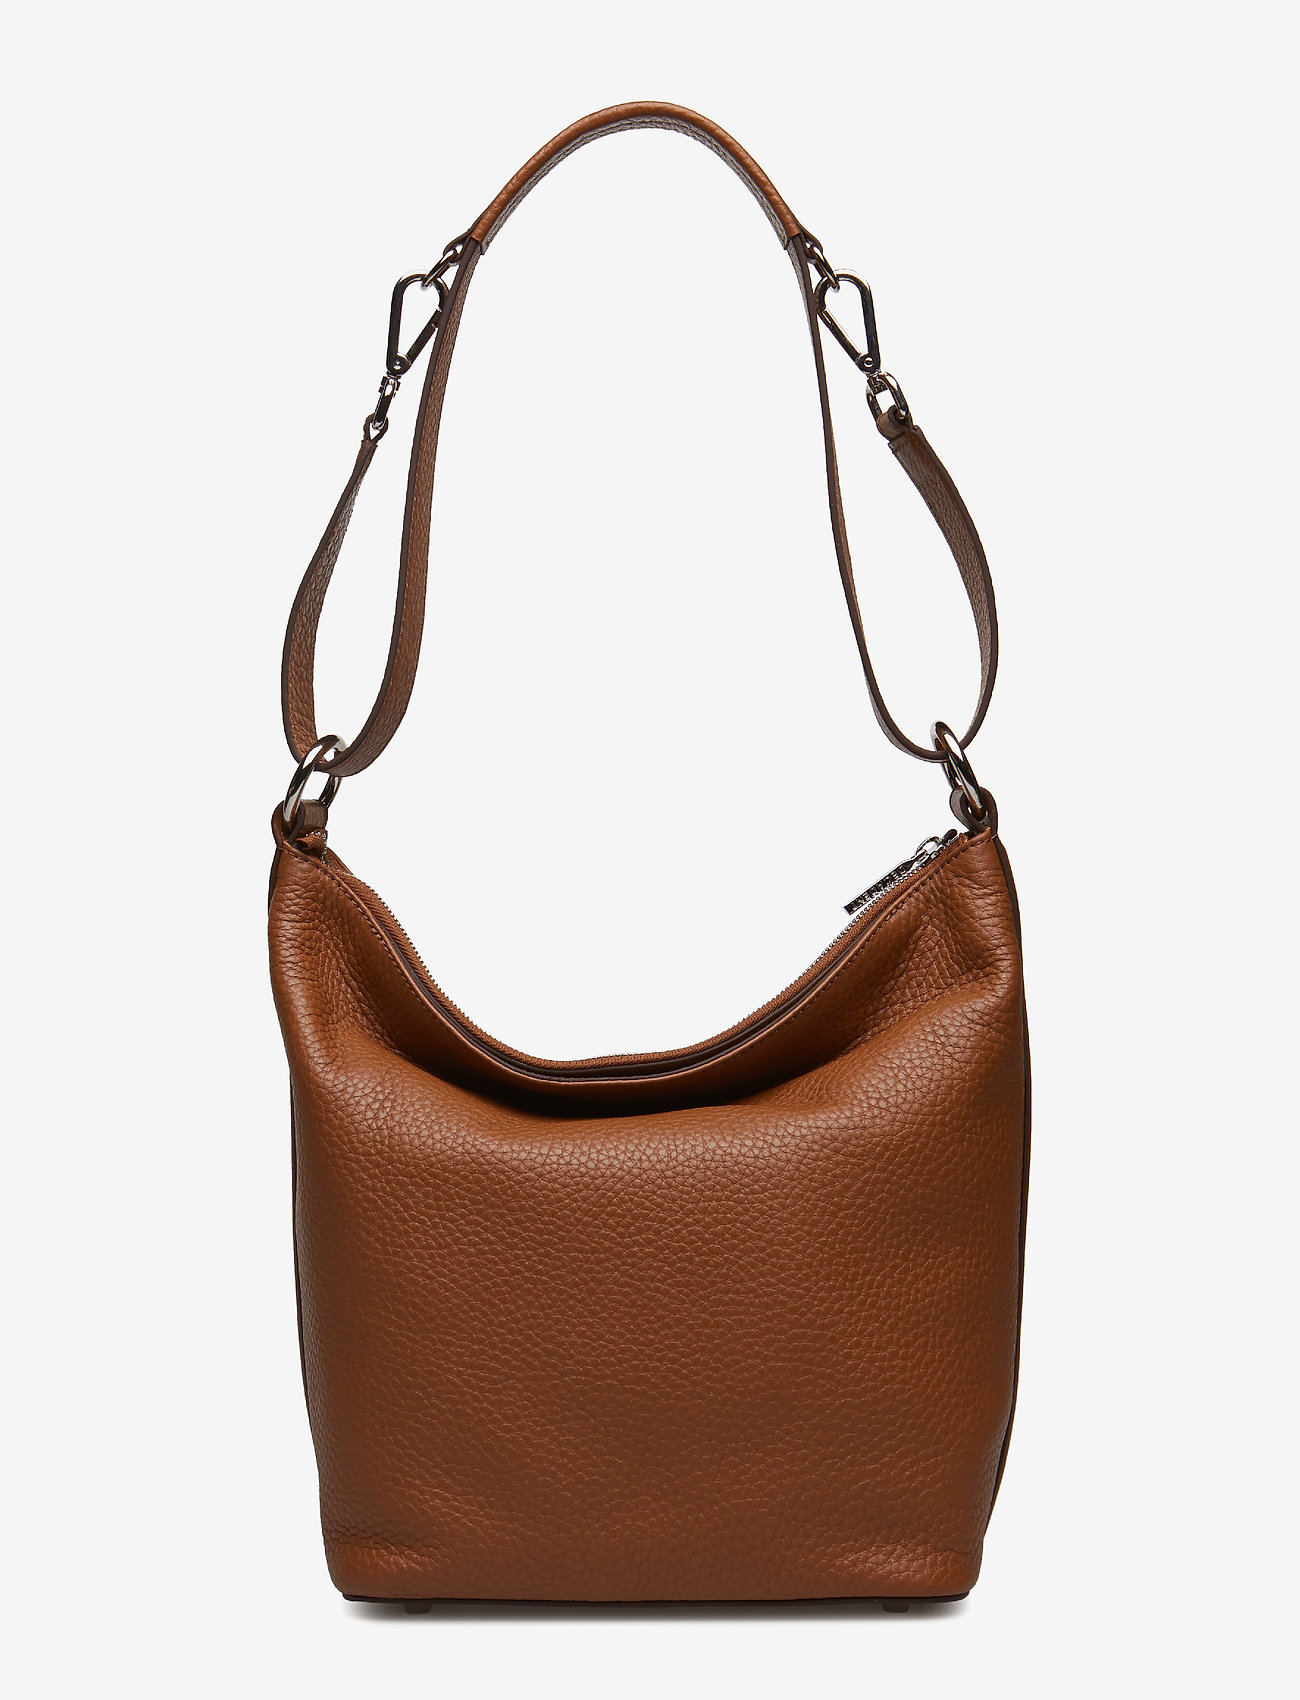 Decadent Small Shoulder Bag With Two Way Strap - Bucket-väskor Cognac